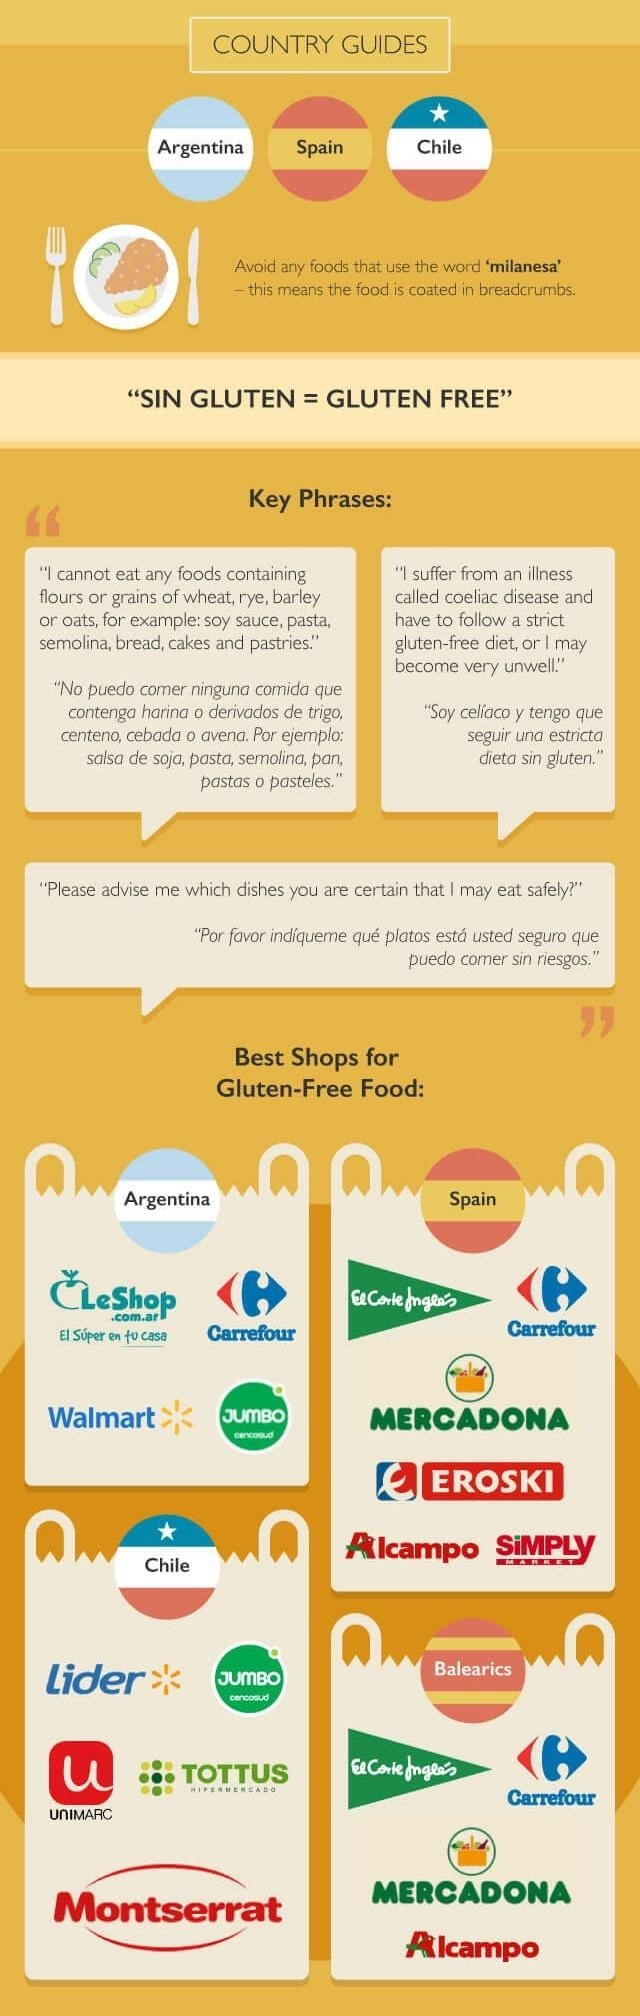 How to Eat Gluten-Free Abroad